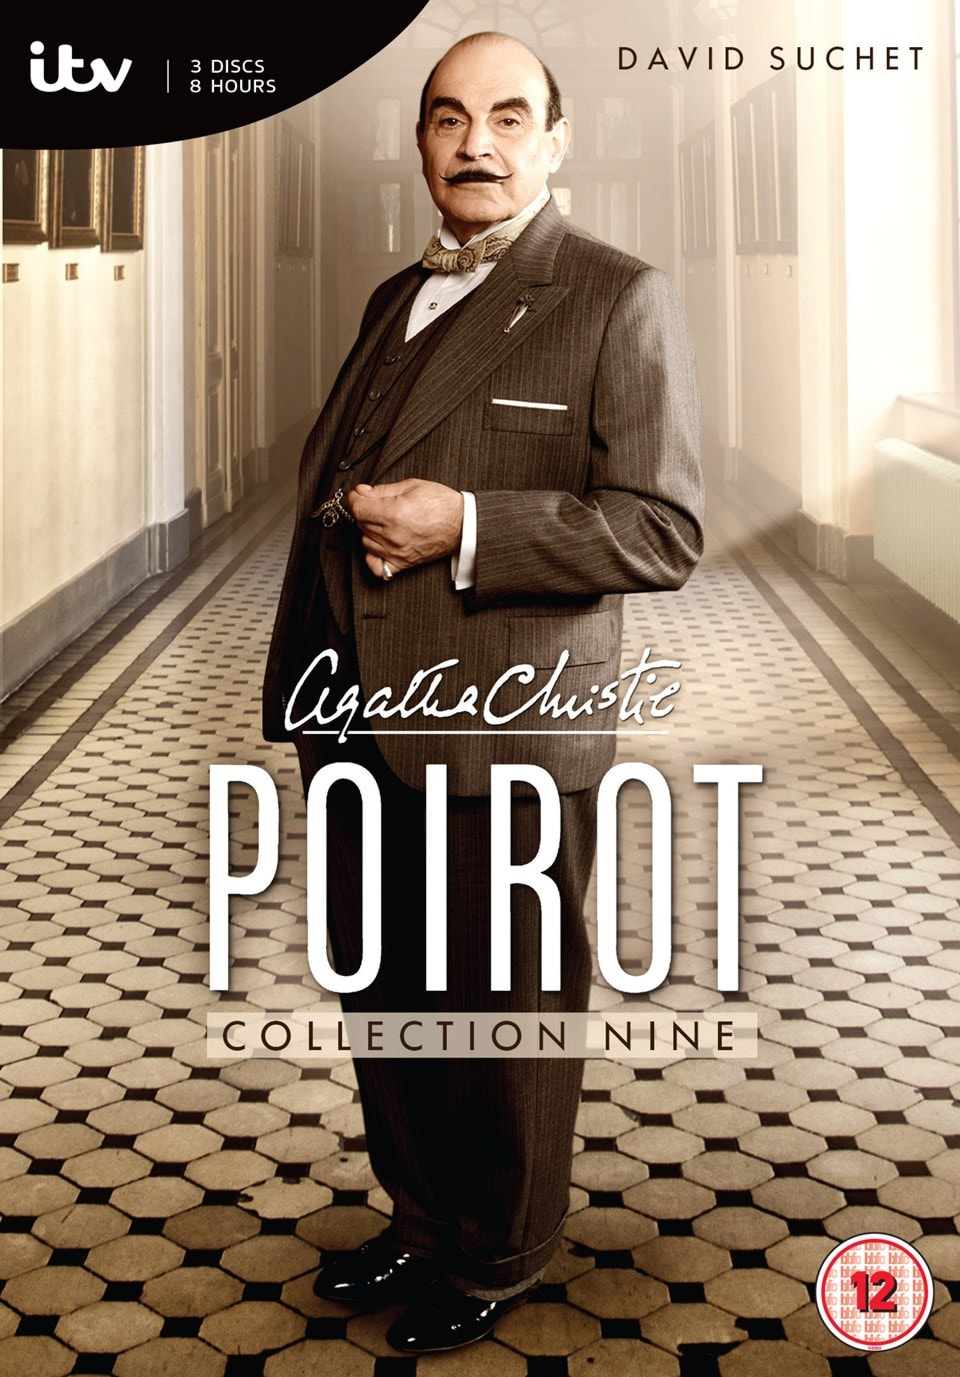 Agatha Christie's Poirot: The Collection 9 - 1